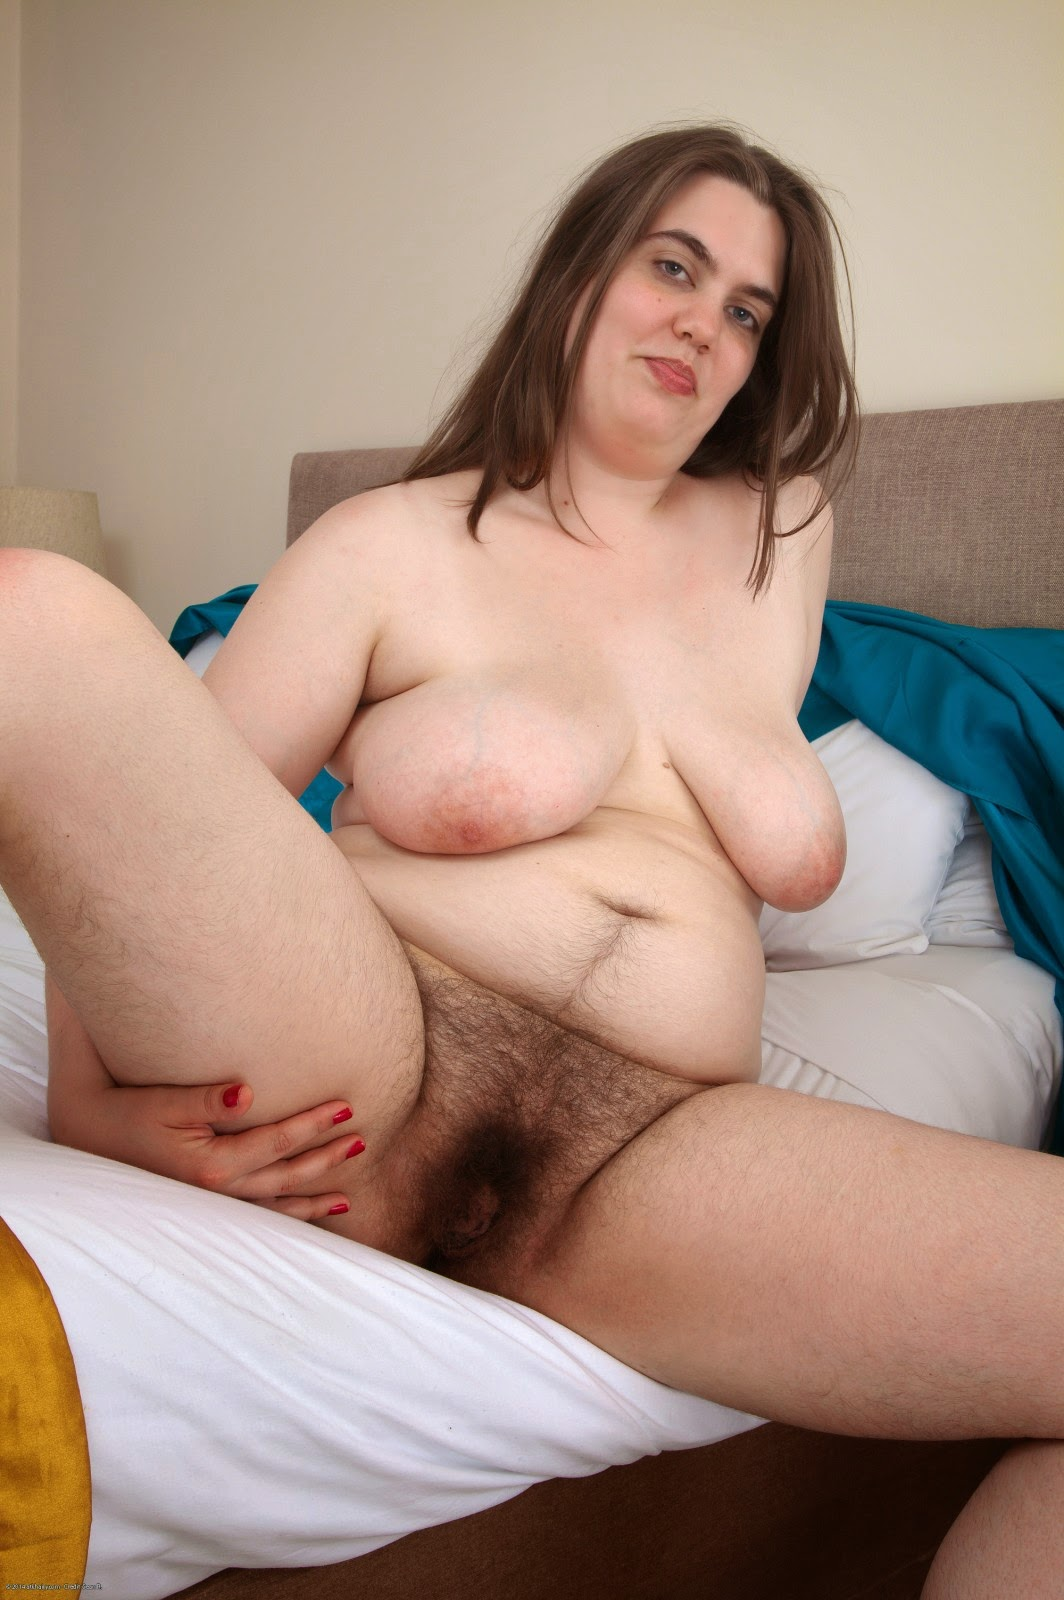 Chubby mature women tube